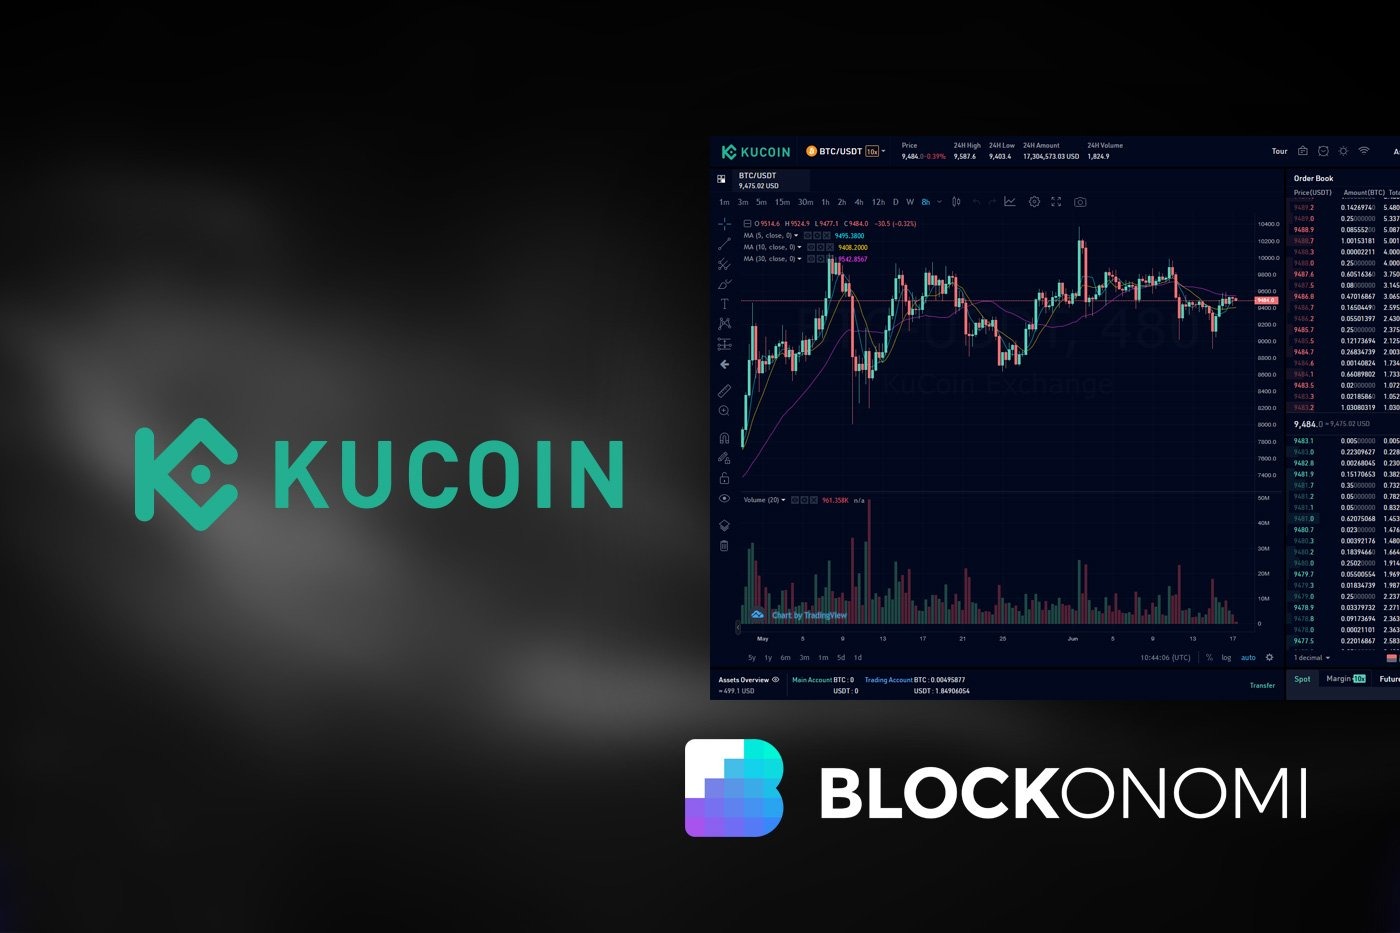 KuCoin Review: Cryptocurrency Exchange With Margin, Futures & Earning Options